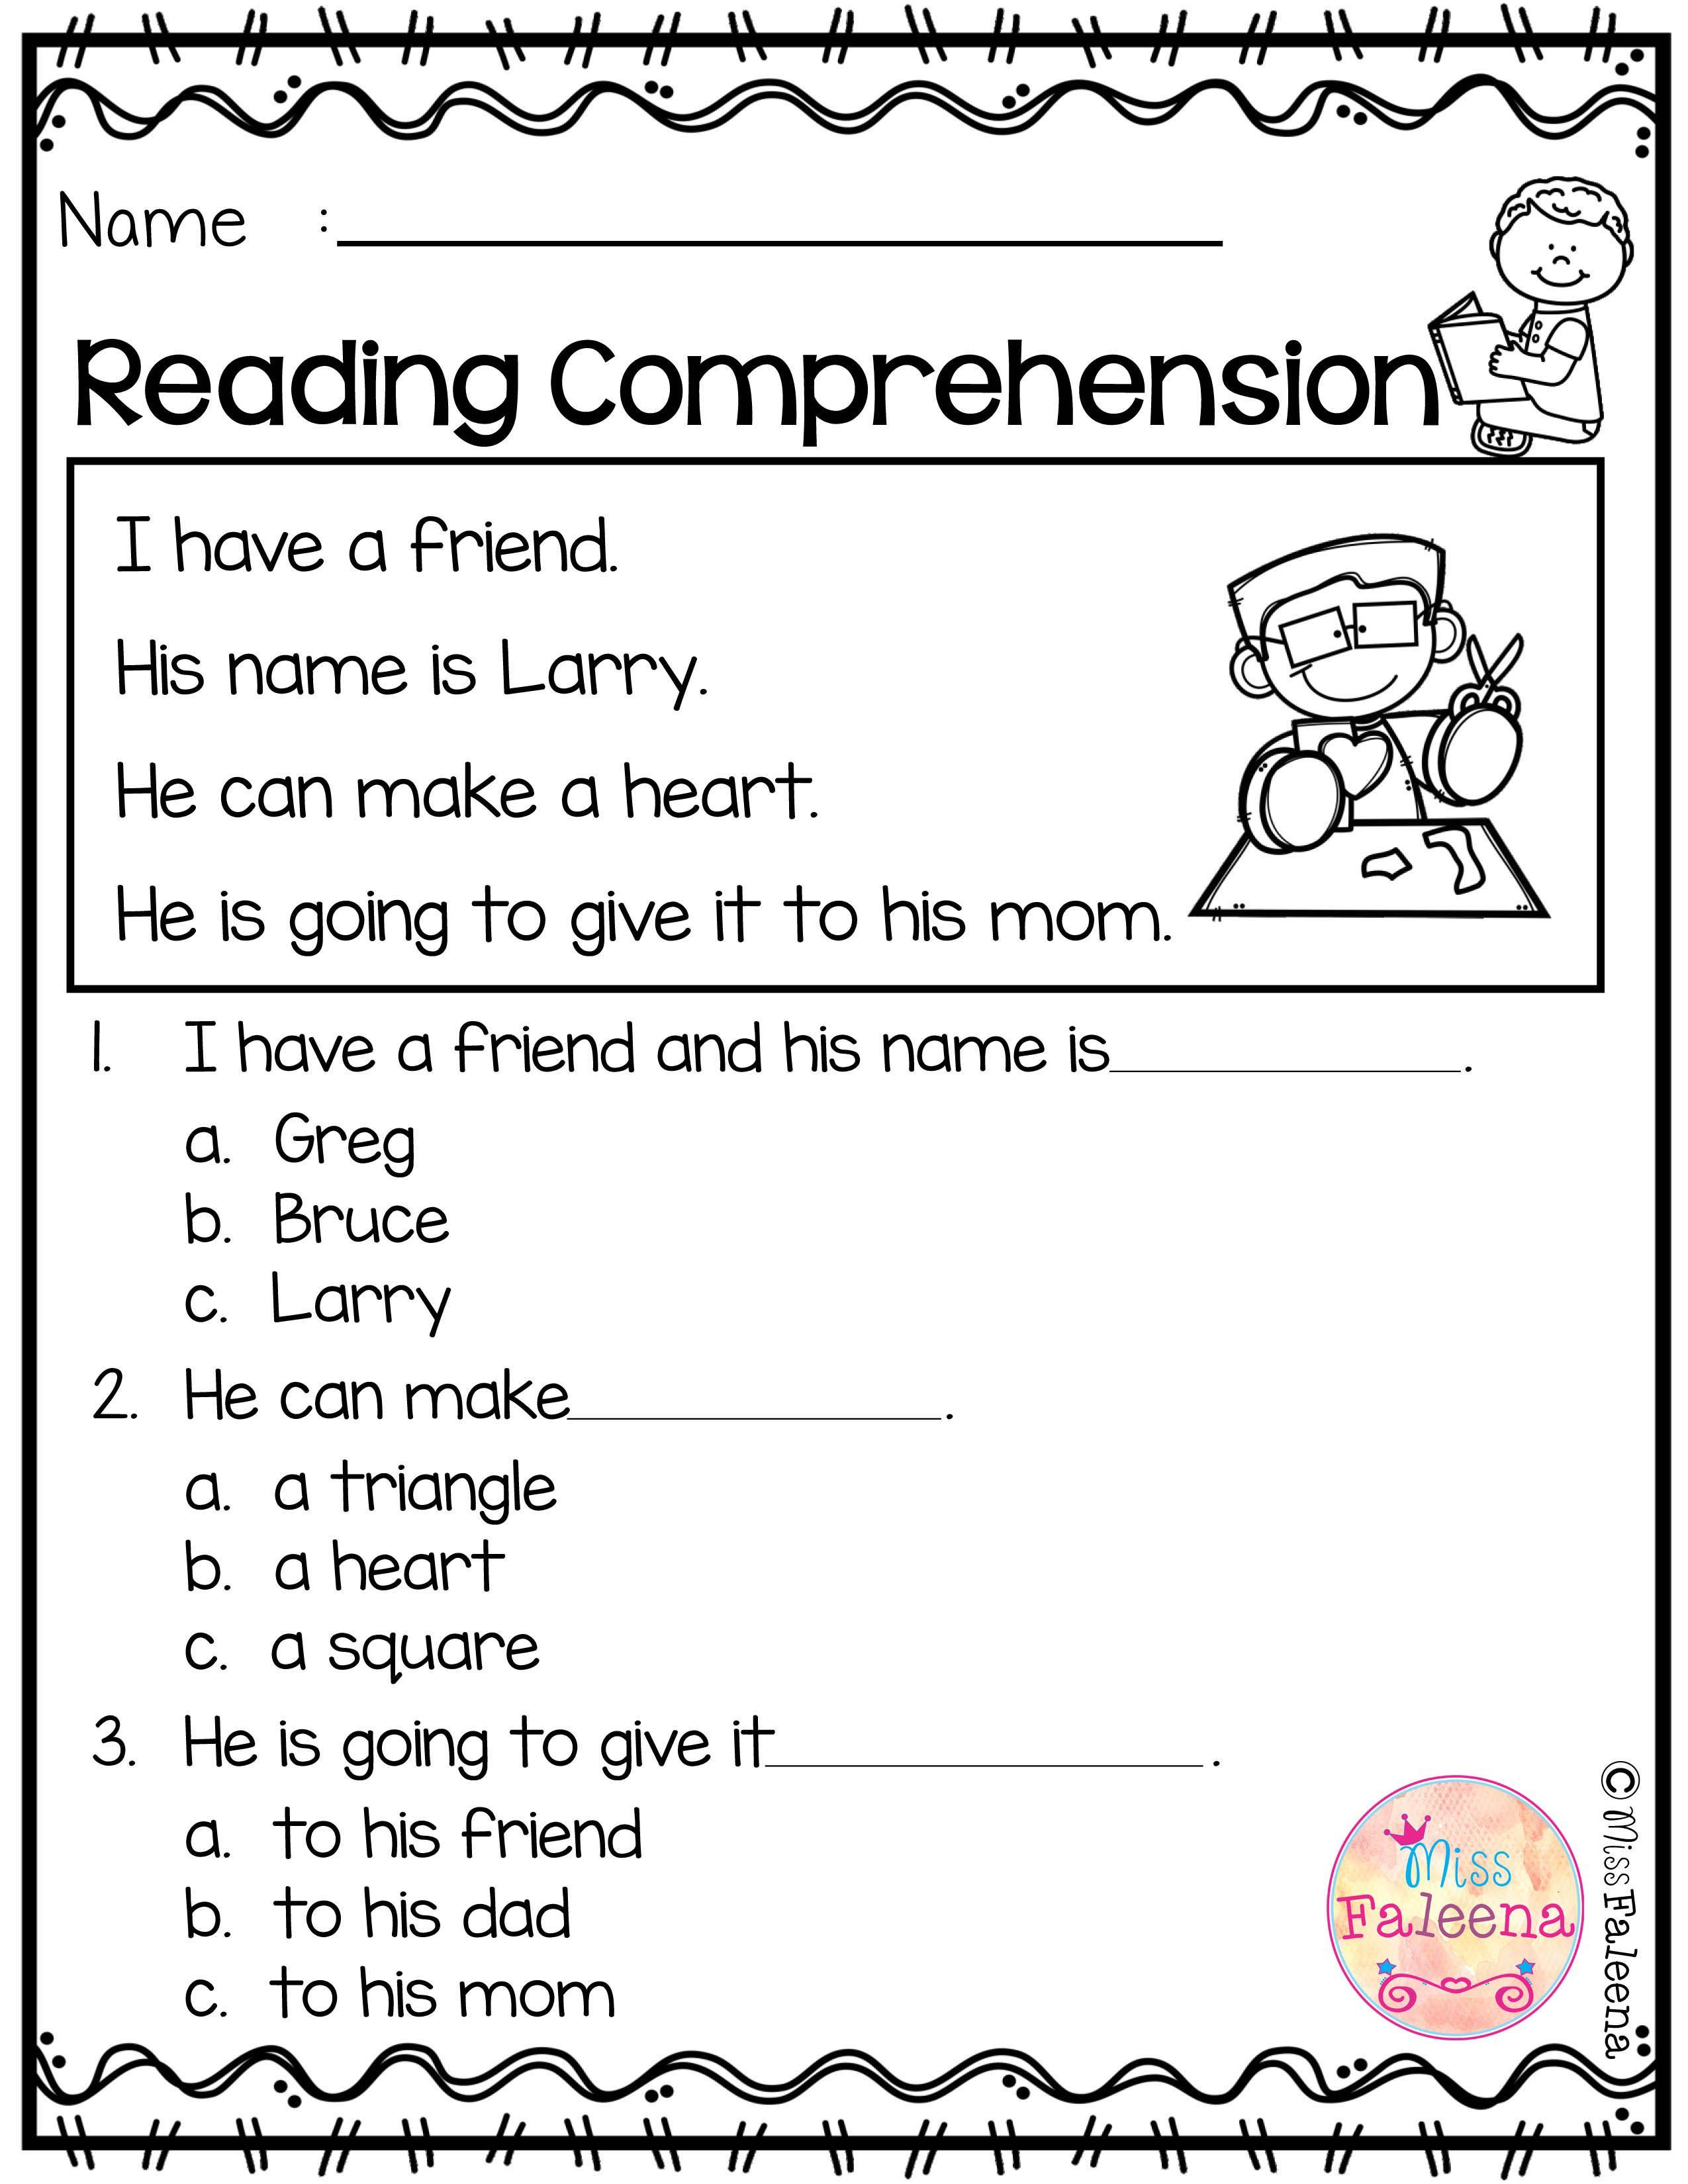 Free Reading Comprehension With Images